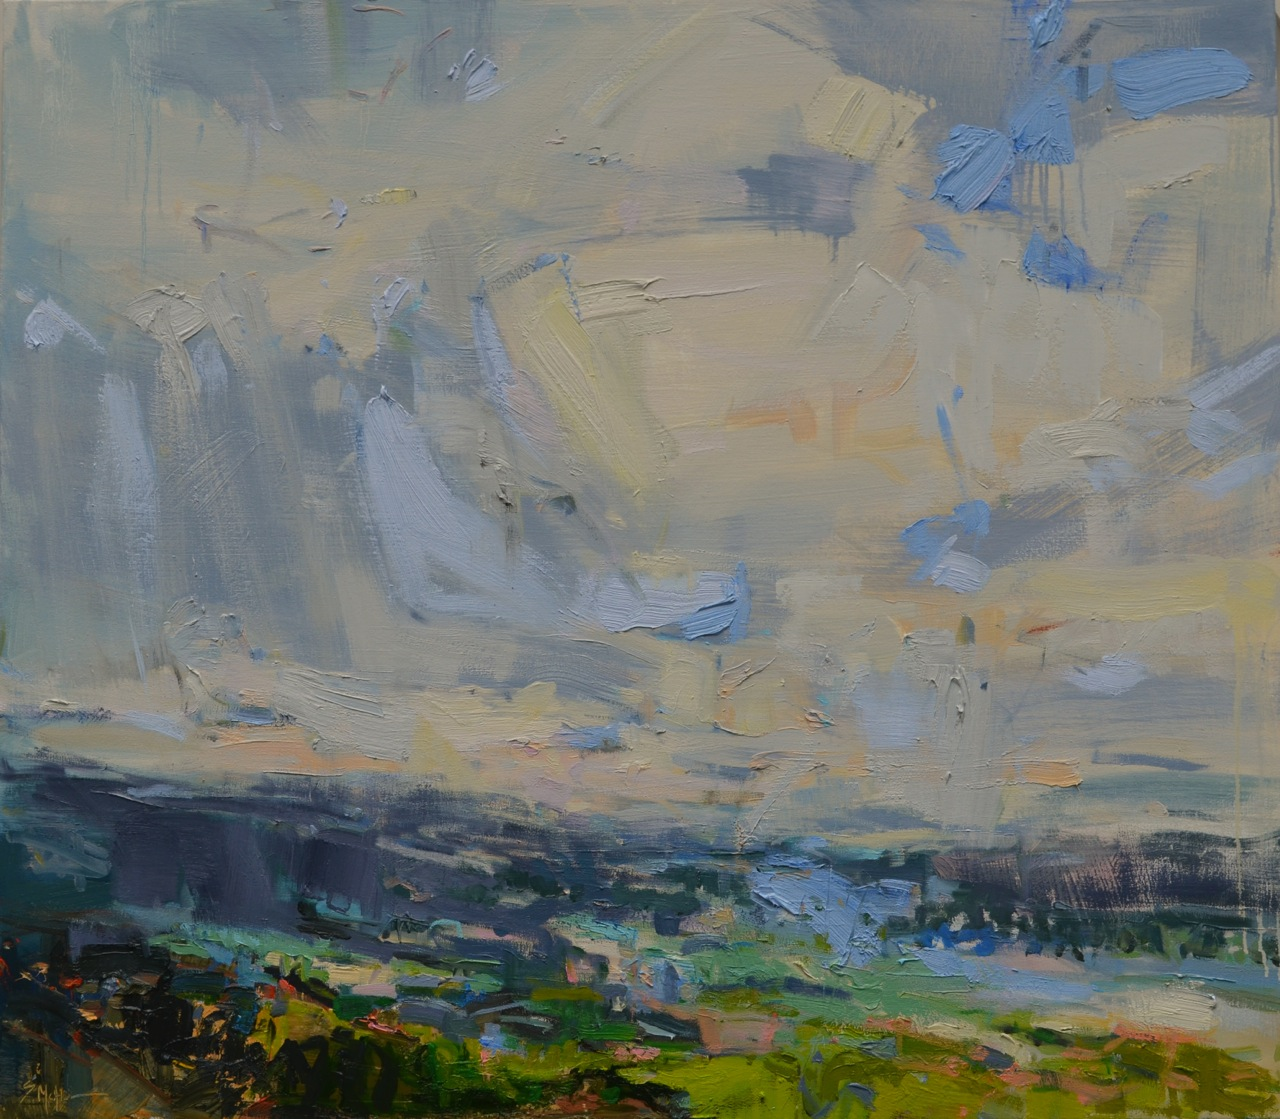 Blue Ridge Valley by Susan Mcalister  						at Les Yeux du Monde Art Gallery